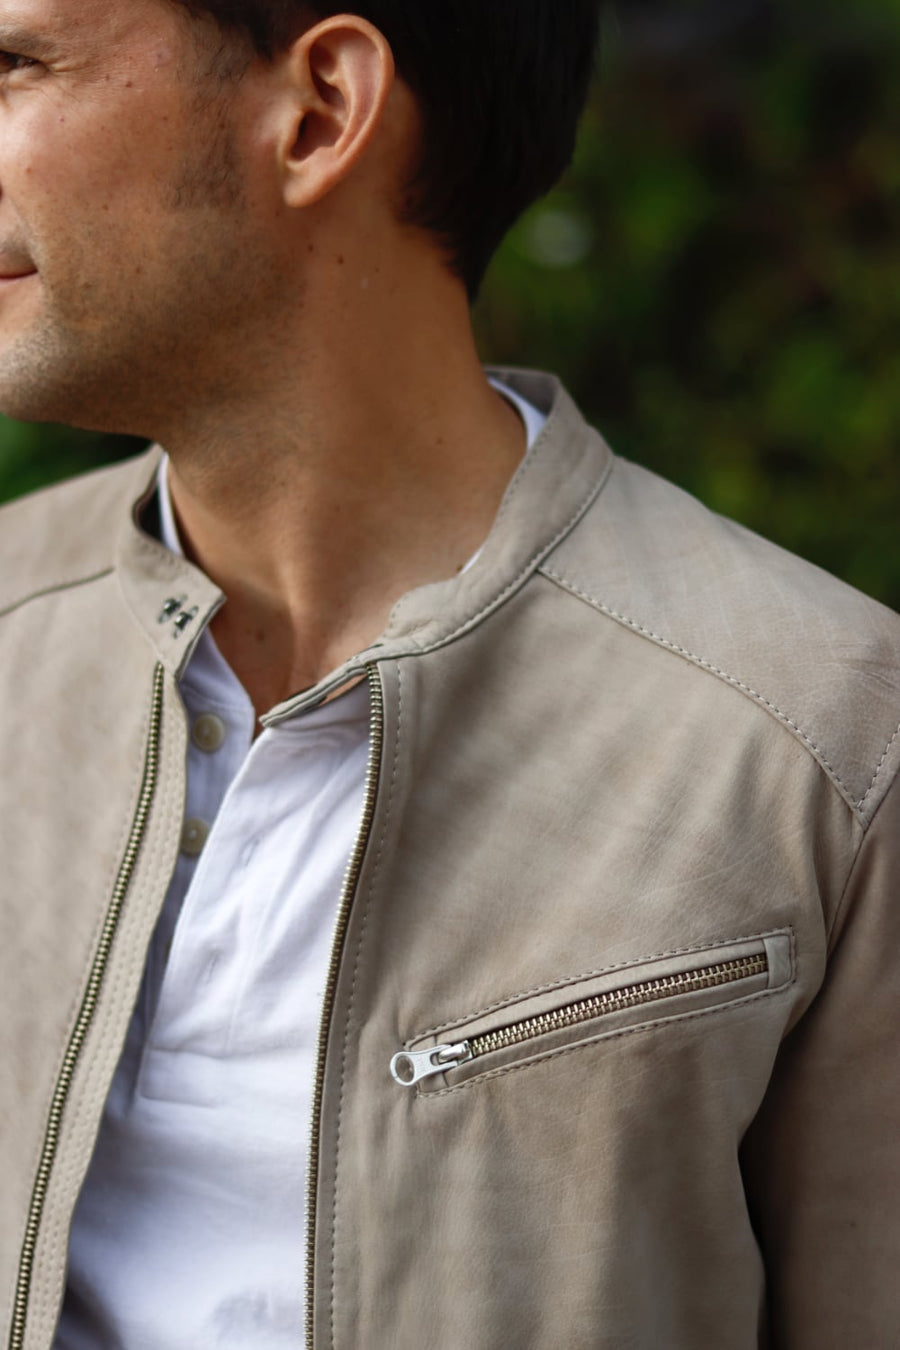 TOSCANA Leather Jacket Lightweight Calf Suede in Taupe color